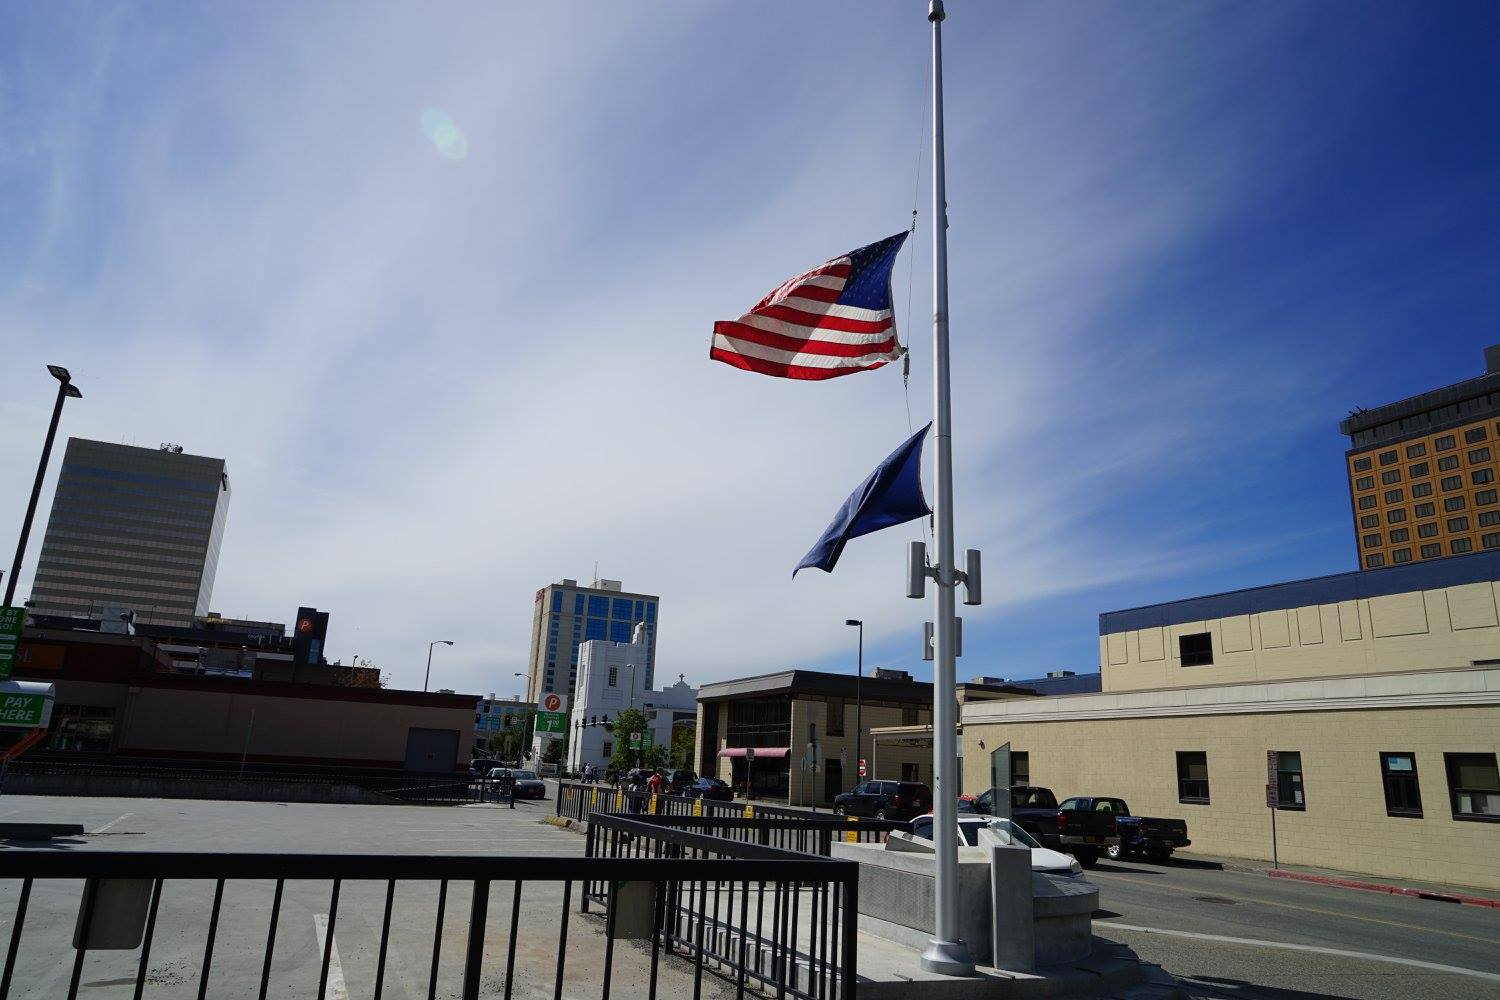 US flag at half-mast in Anchorage, Alaska, after the Orlando shooting. Photo taken days into the beginning of our journey.